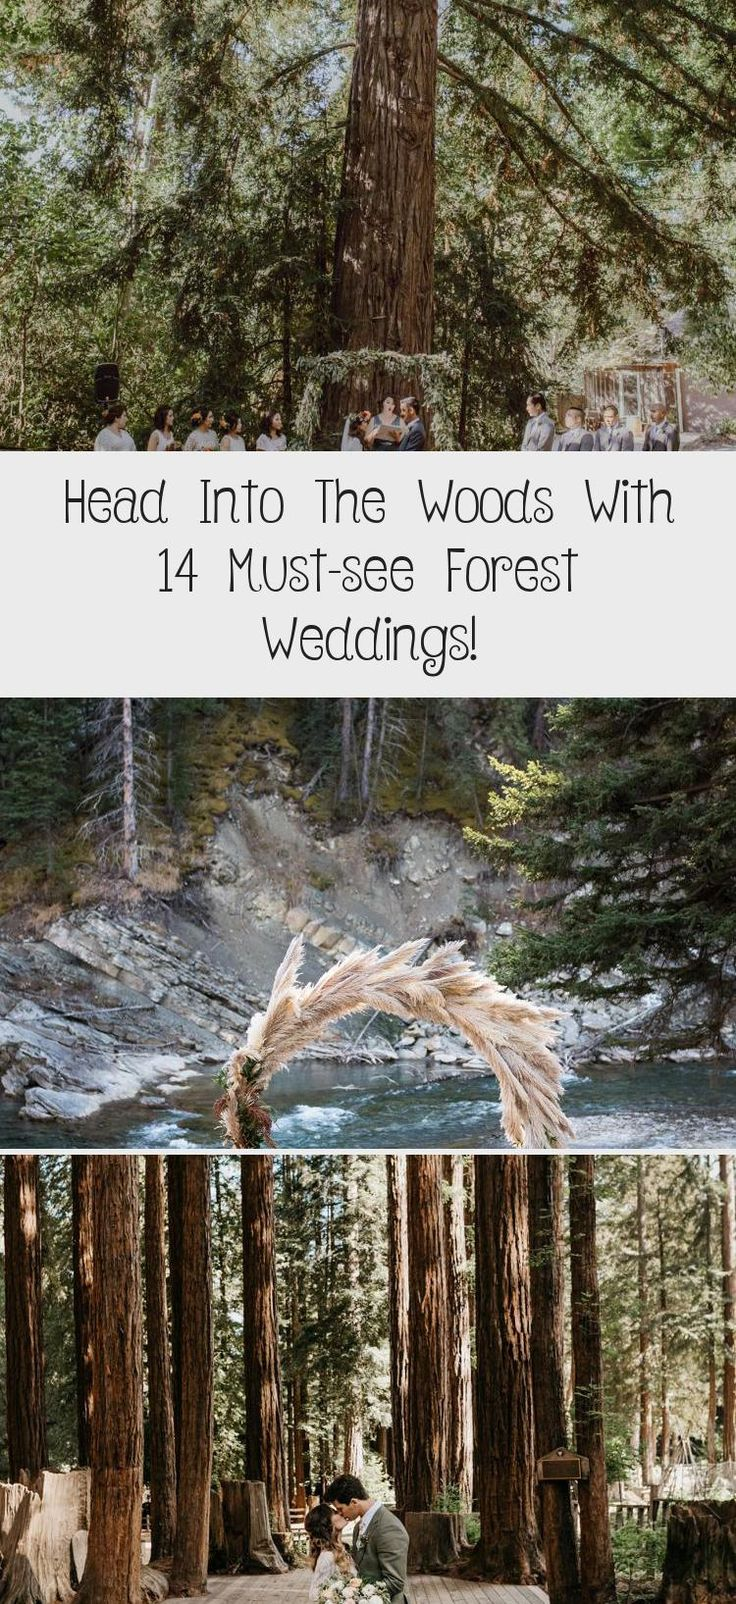 Feb 1, 2020 - dreamy weddings in the woods